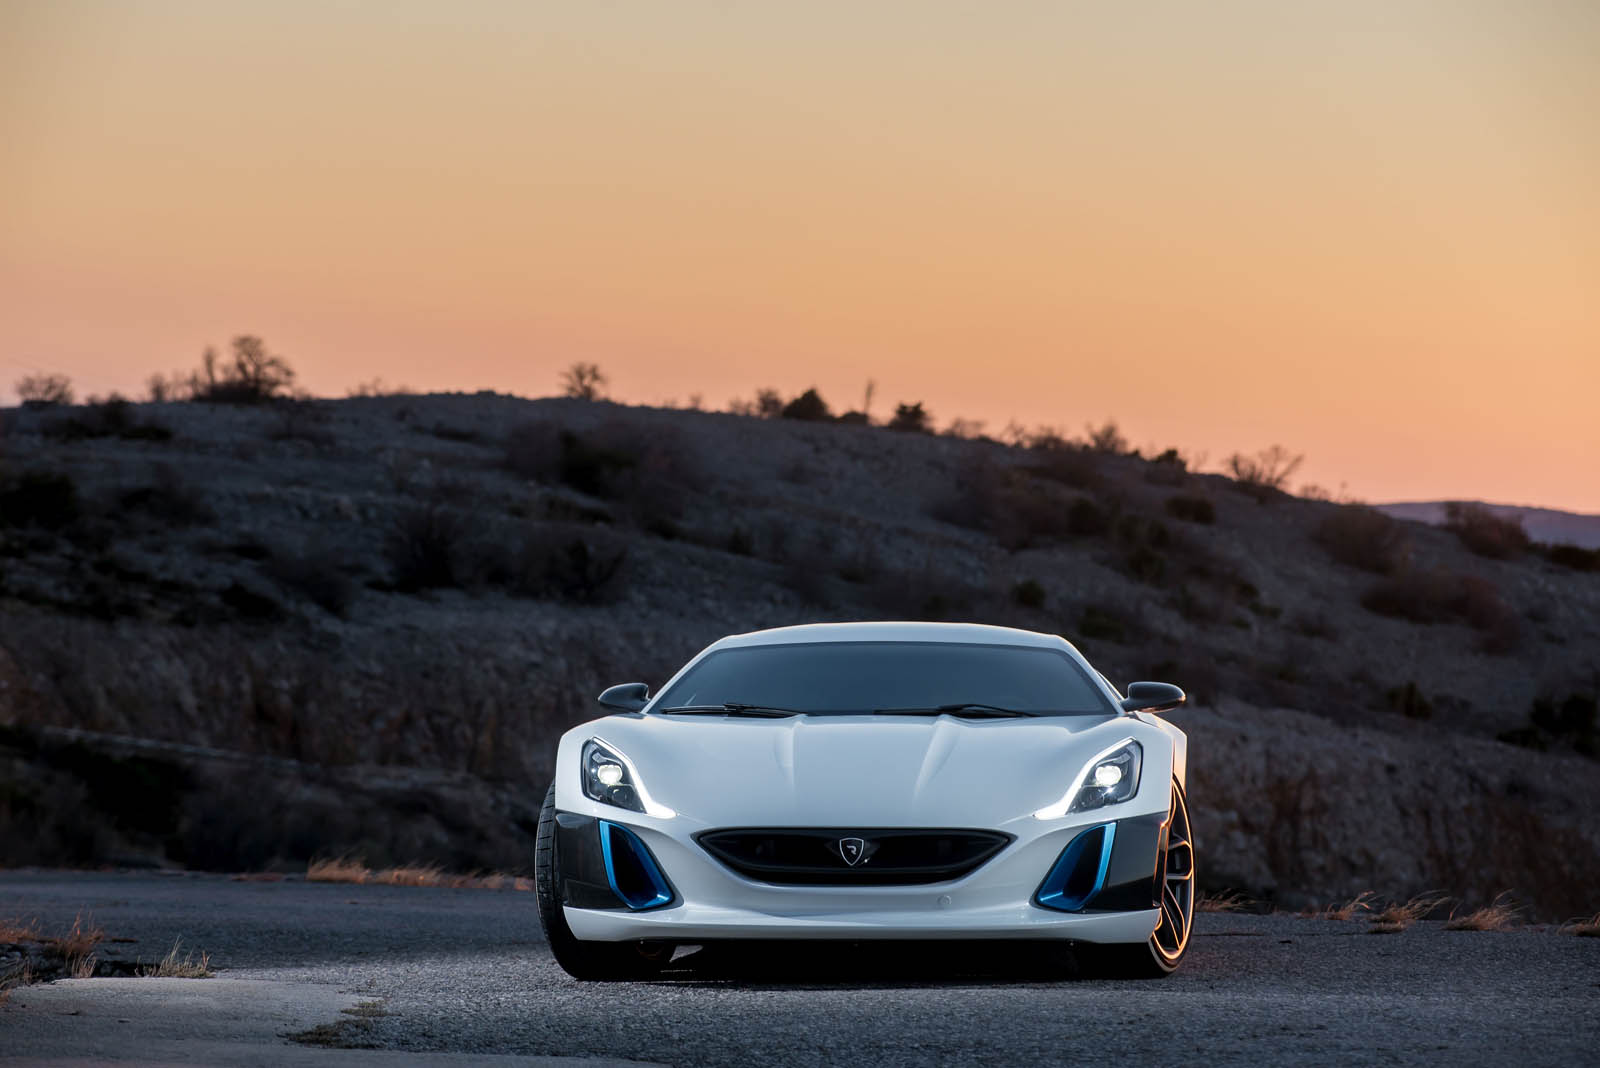 Rimac Concept_One in Geneva 2017 (22)